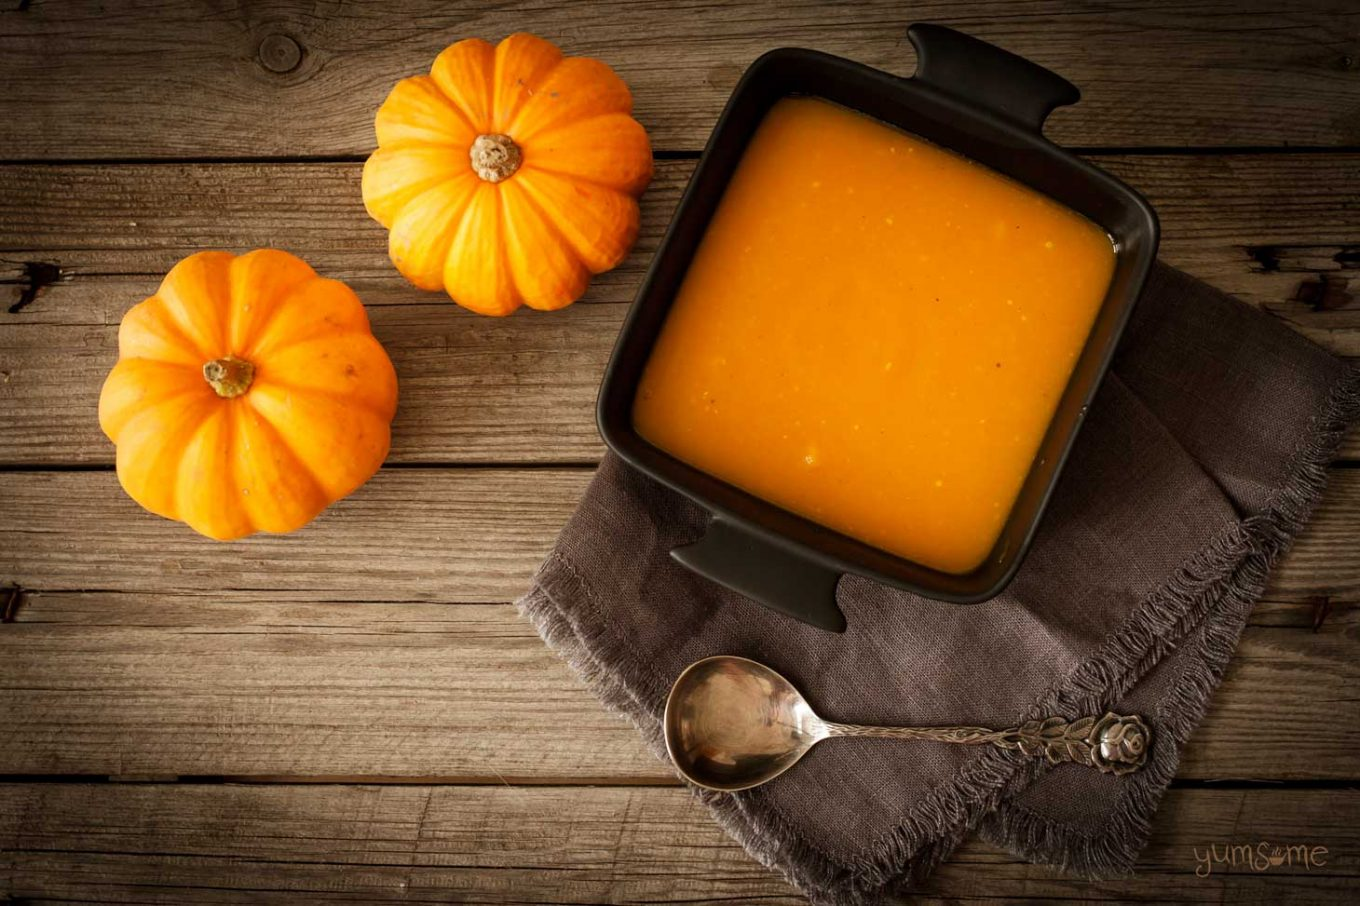 Two pumpkins and a bowl of pumpkin soup on a wooden table.